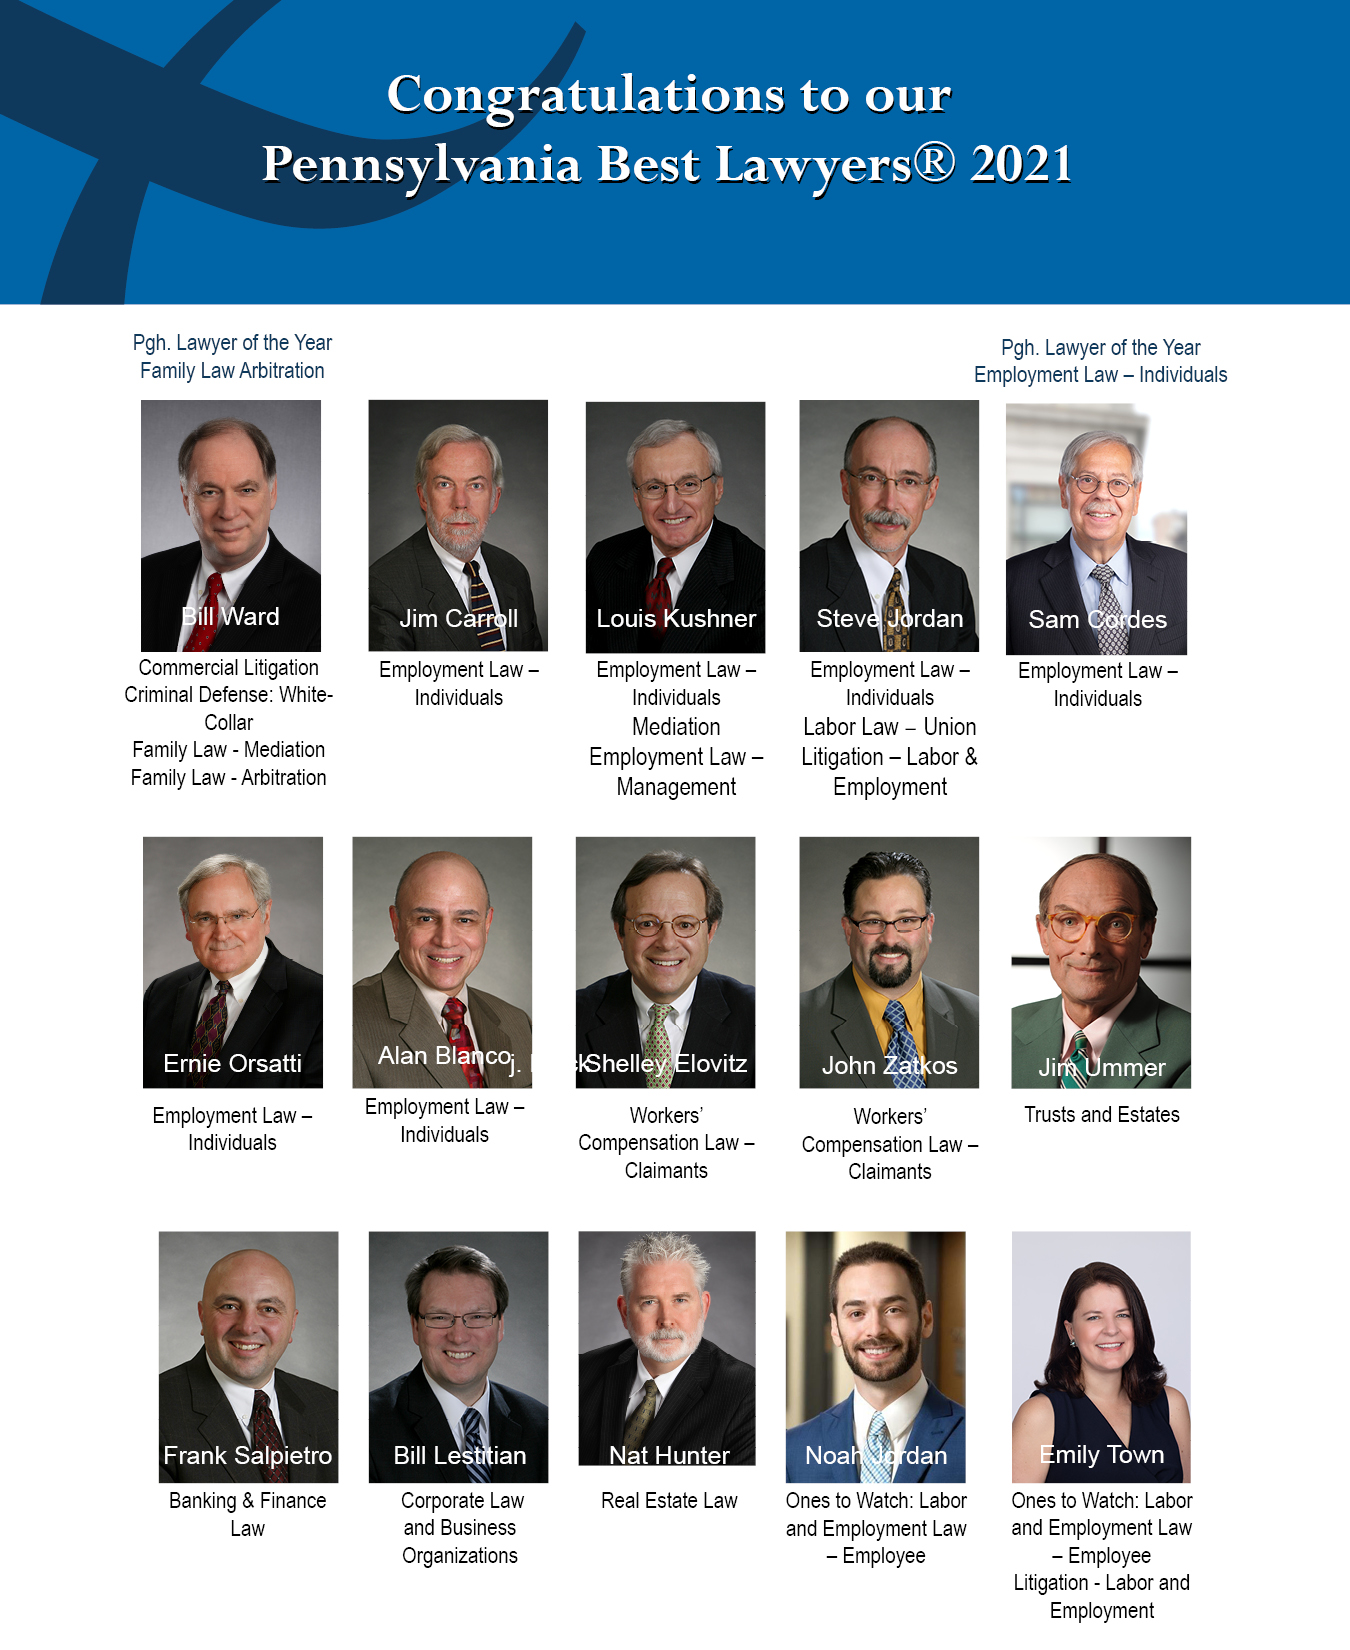 Best lawyers congratulations graphic